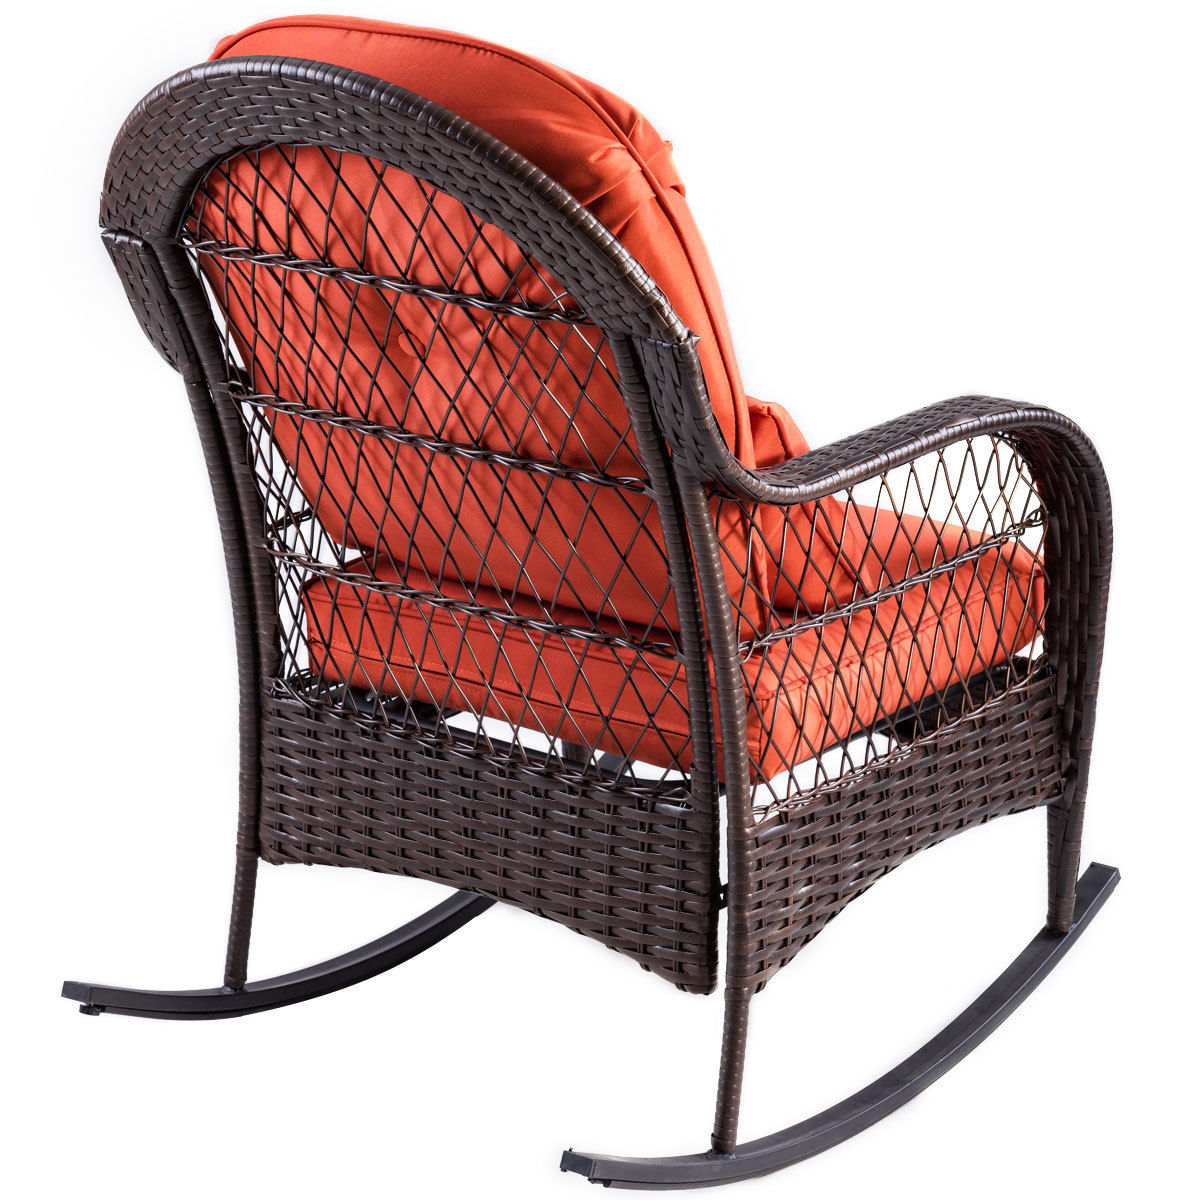 Wicker Rocking Chair Us 125 3 30 Off Aliexpress Buy Giantex Patio Rattan Wicker Rocking Chair Modern Porch Deck Rocker Outdoor Furniture With Padded Cushion